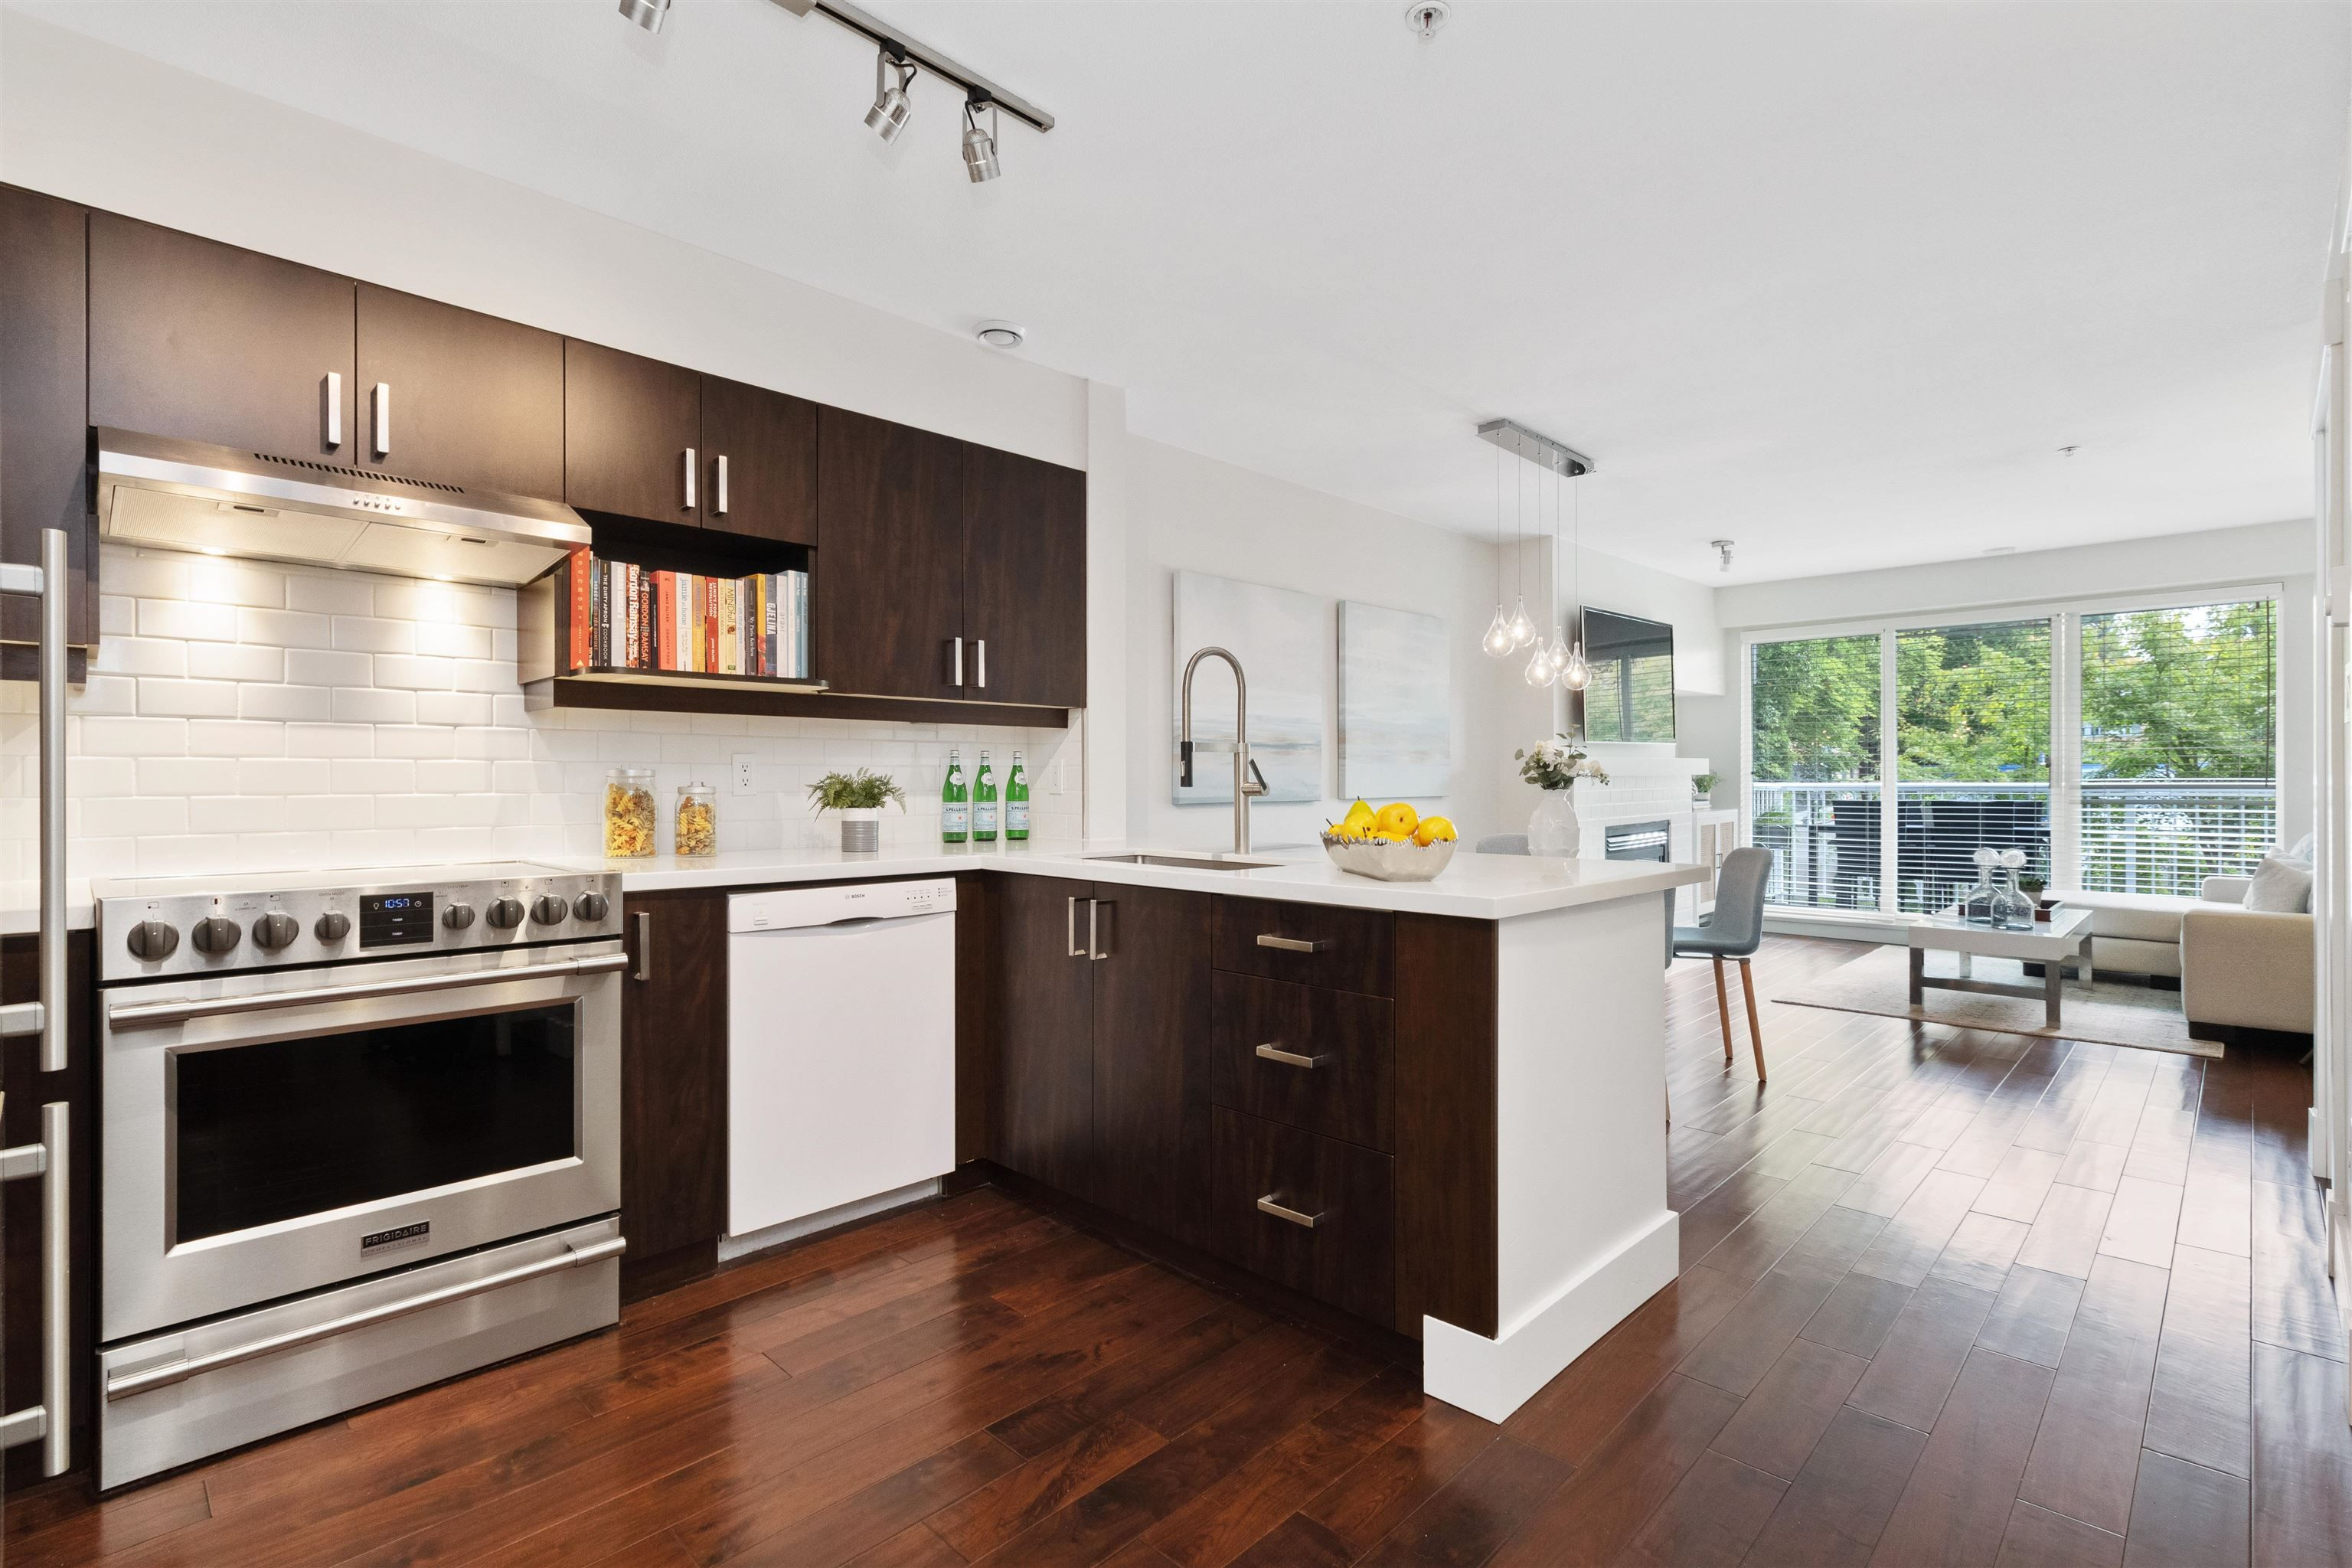 """Main Photo: 309 2628 YEW Street in Vancouver: Kitsilano Condo for sale in """"Connaught Place"""" (Vancouver West)  : MLS®# R2617143"""